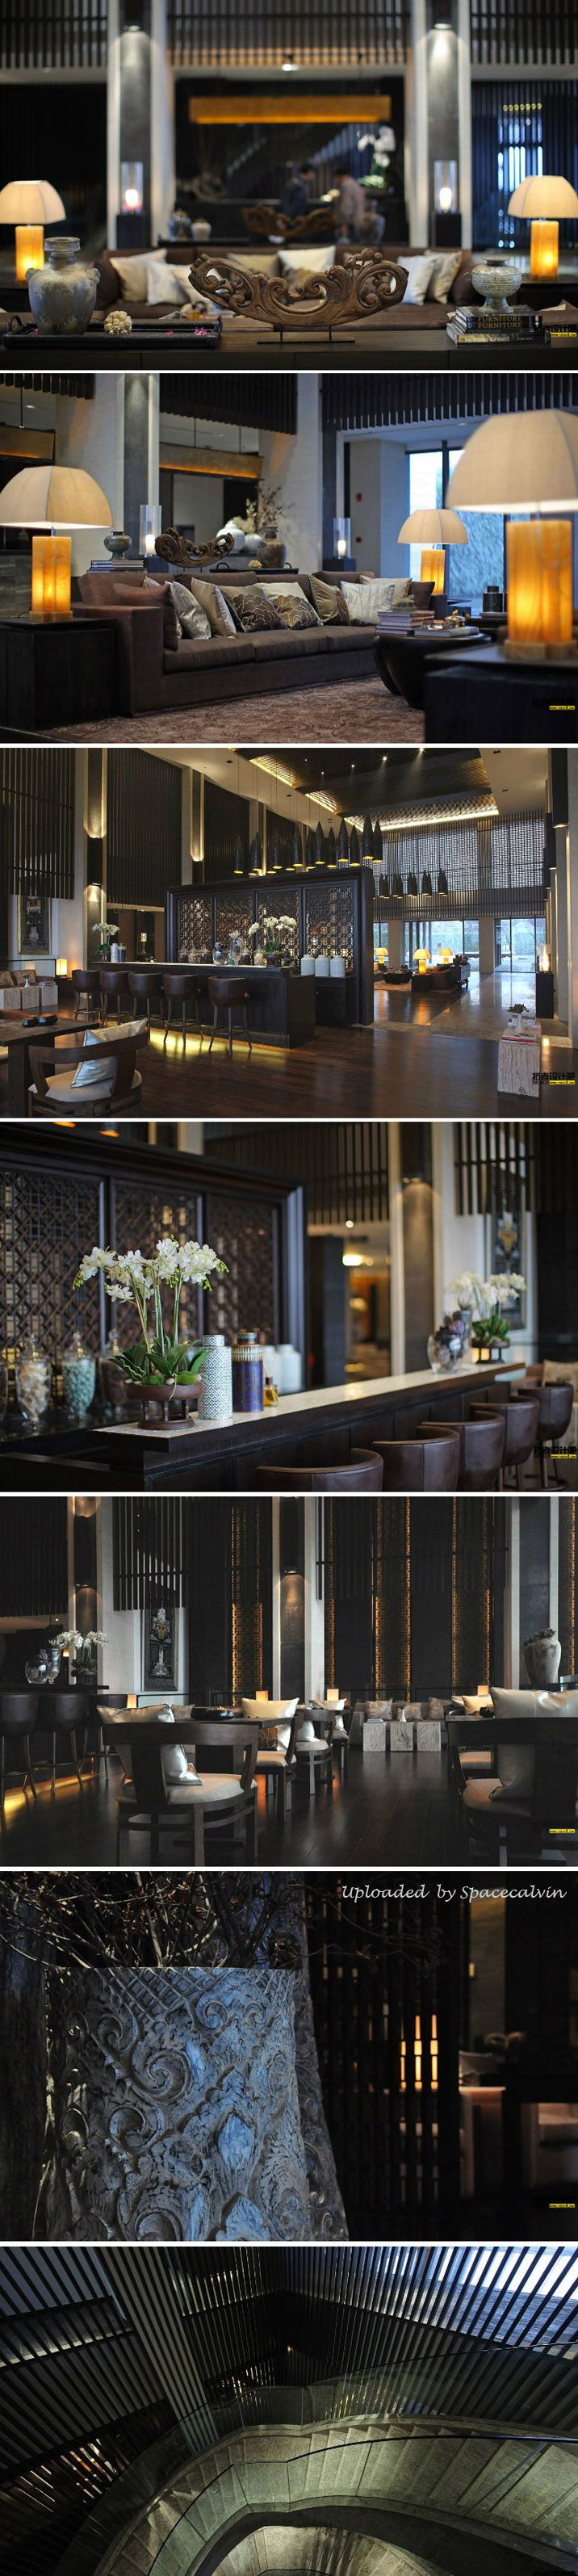 38 best restaurant images on pinterest | restaurant design